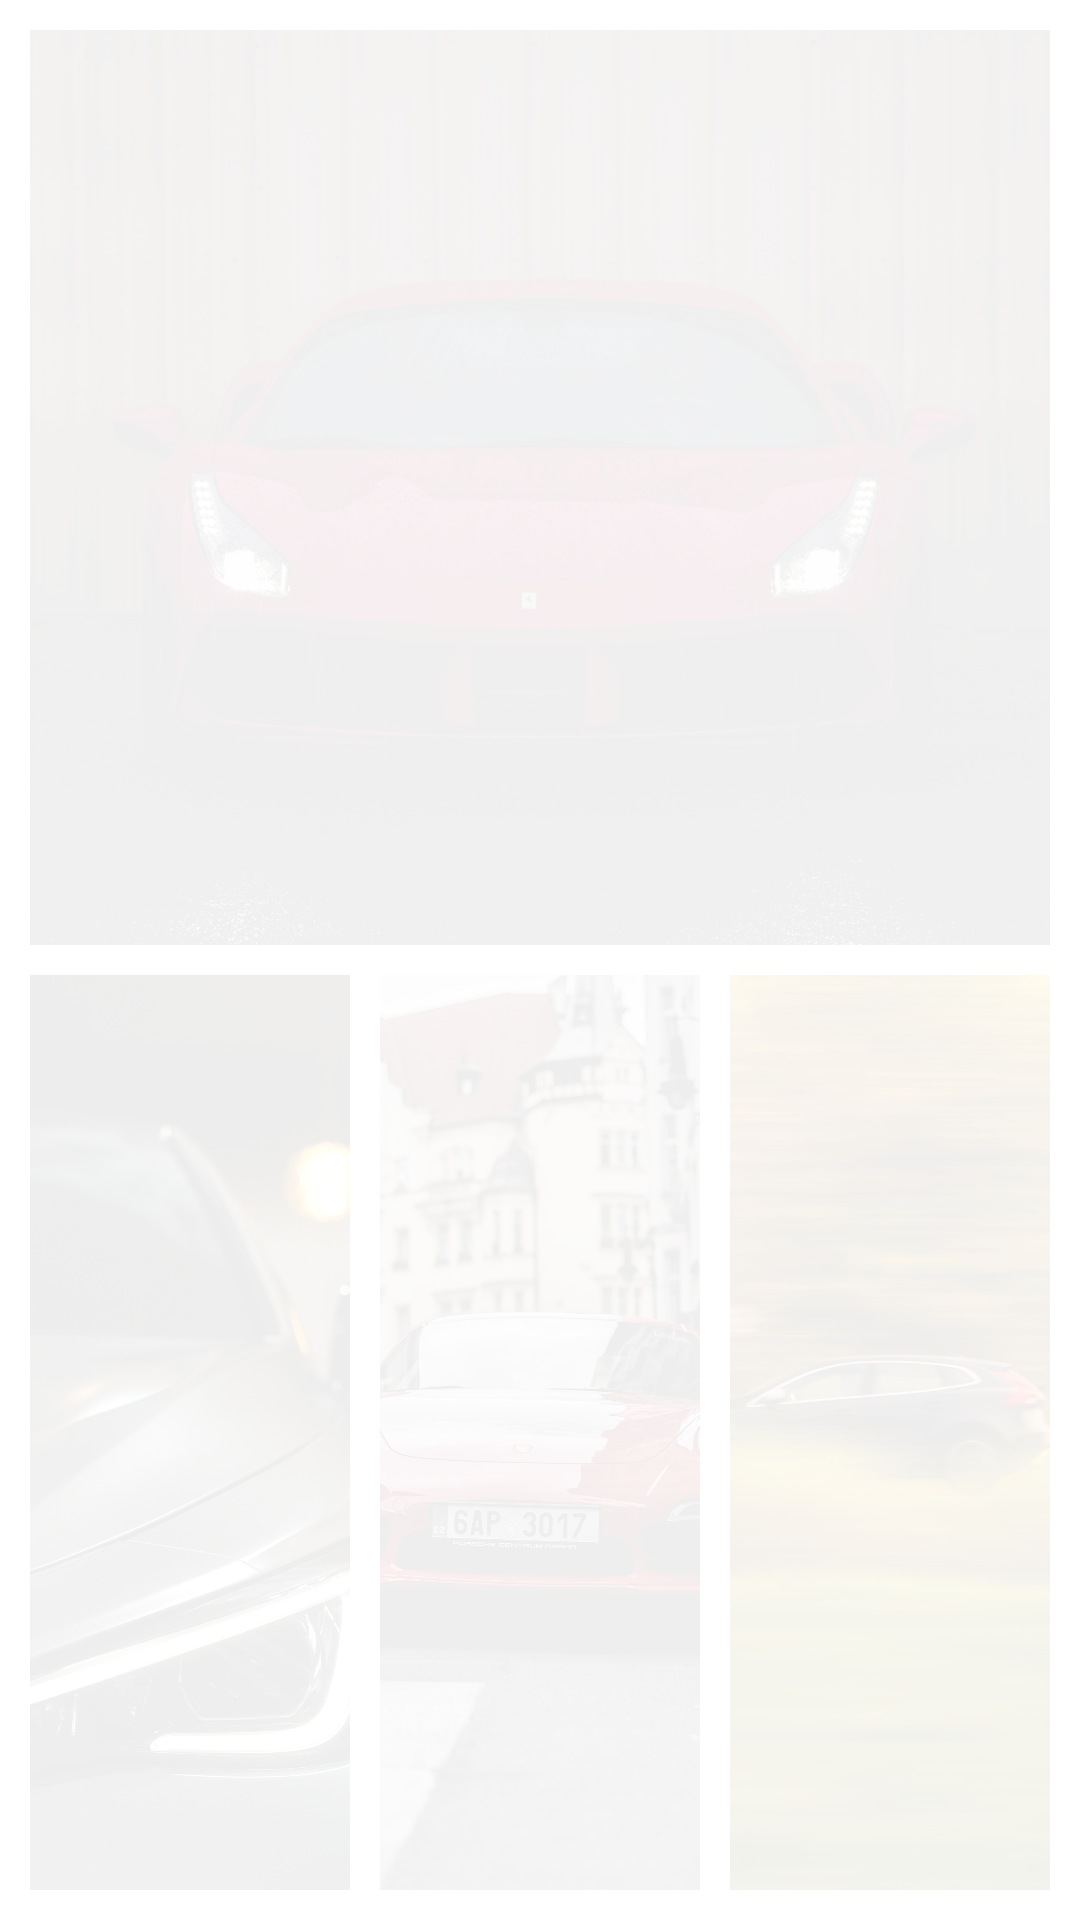 Collage Animation  Template